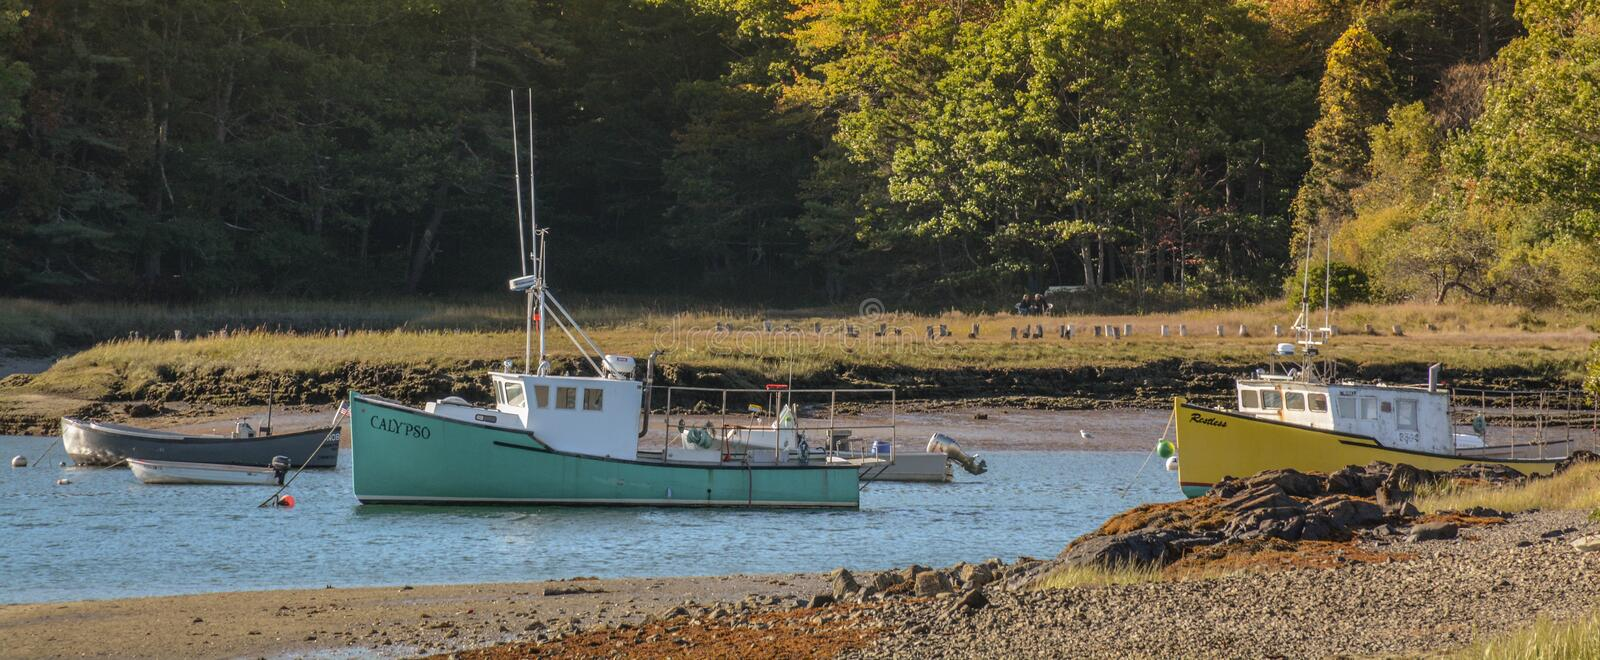 Maine Fishing Boats at Low Tide royalty-vrije stock foto's